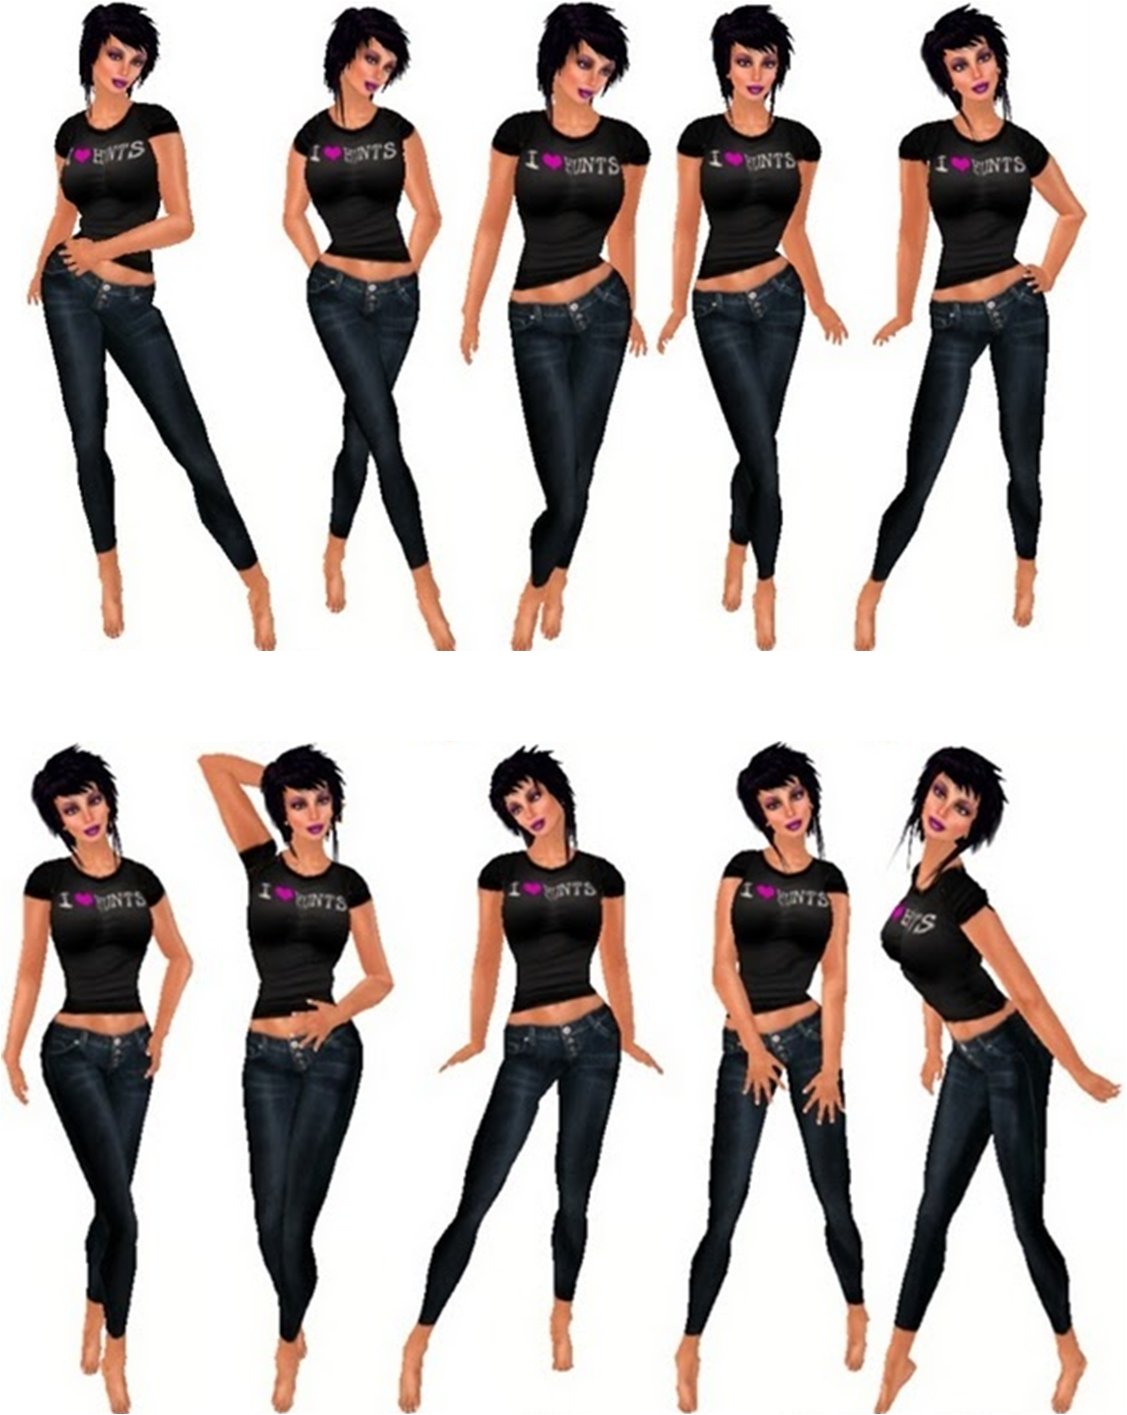 Pictures of model poses